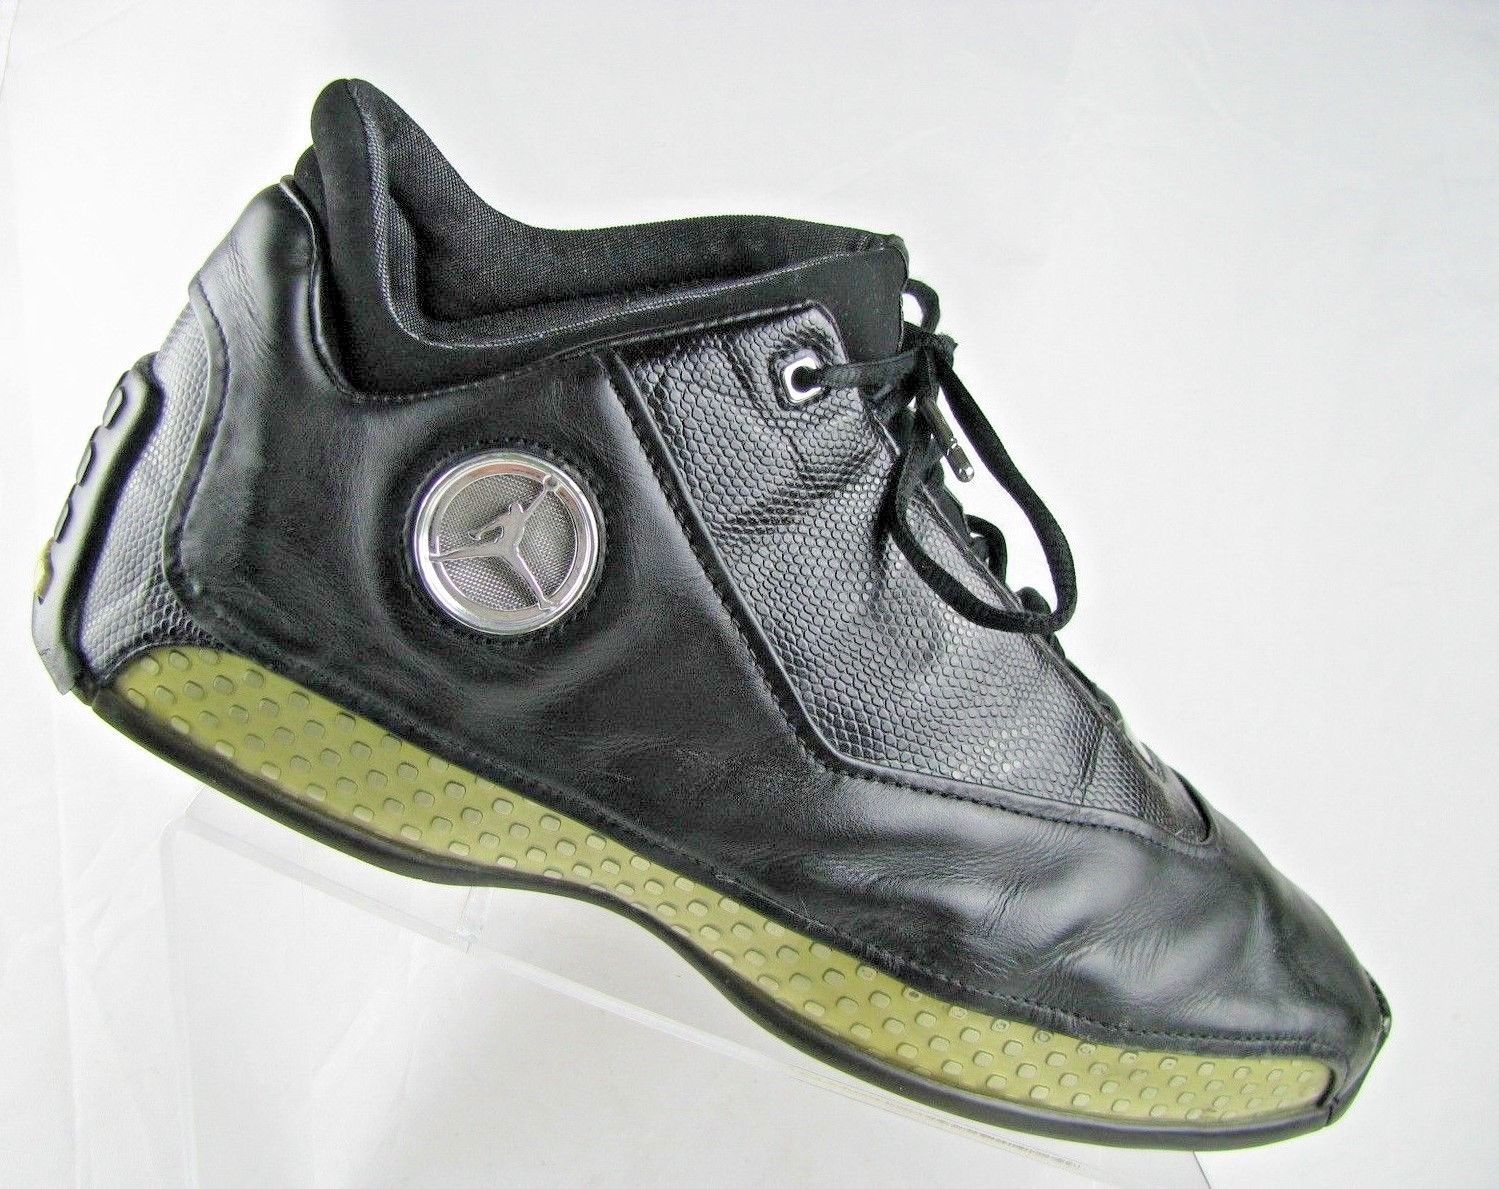 Primary image for RARE Nike Air Jordan 18 XVIII Low Black Chrome Metallic Silver Sz 13 306151-001